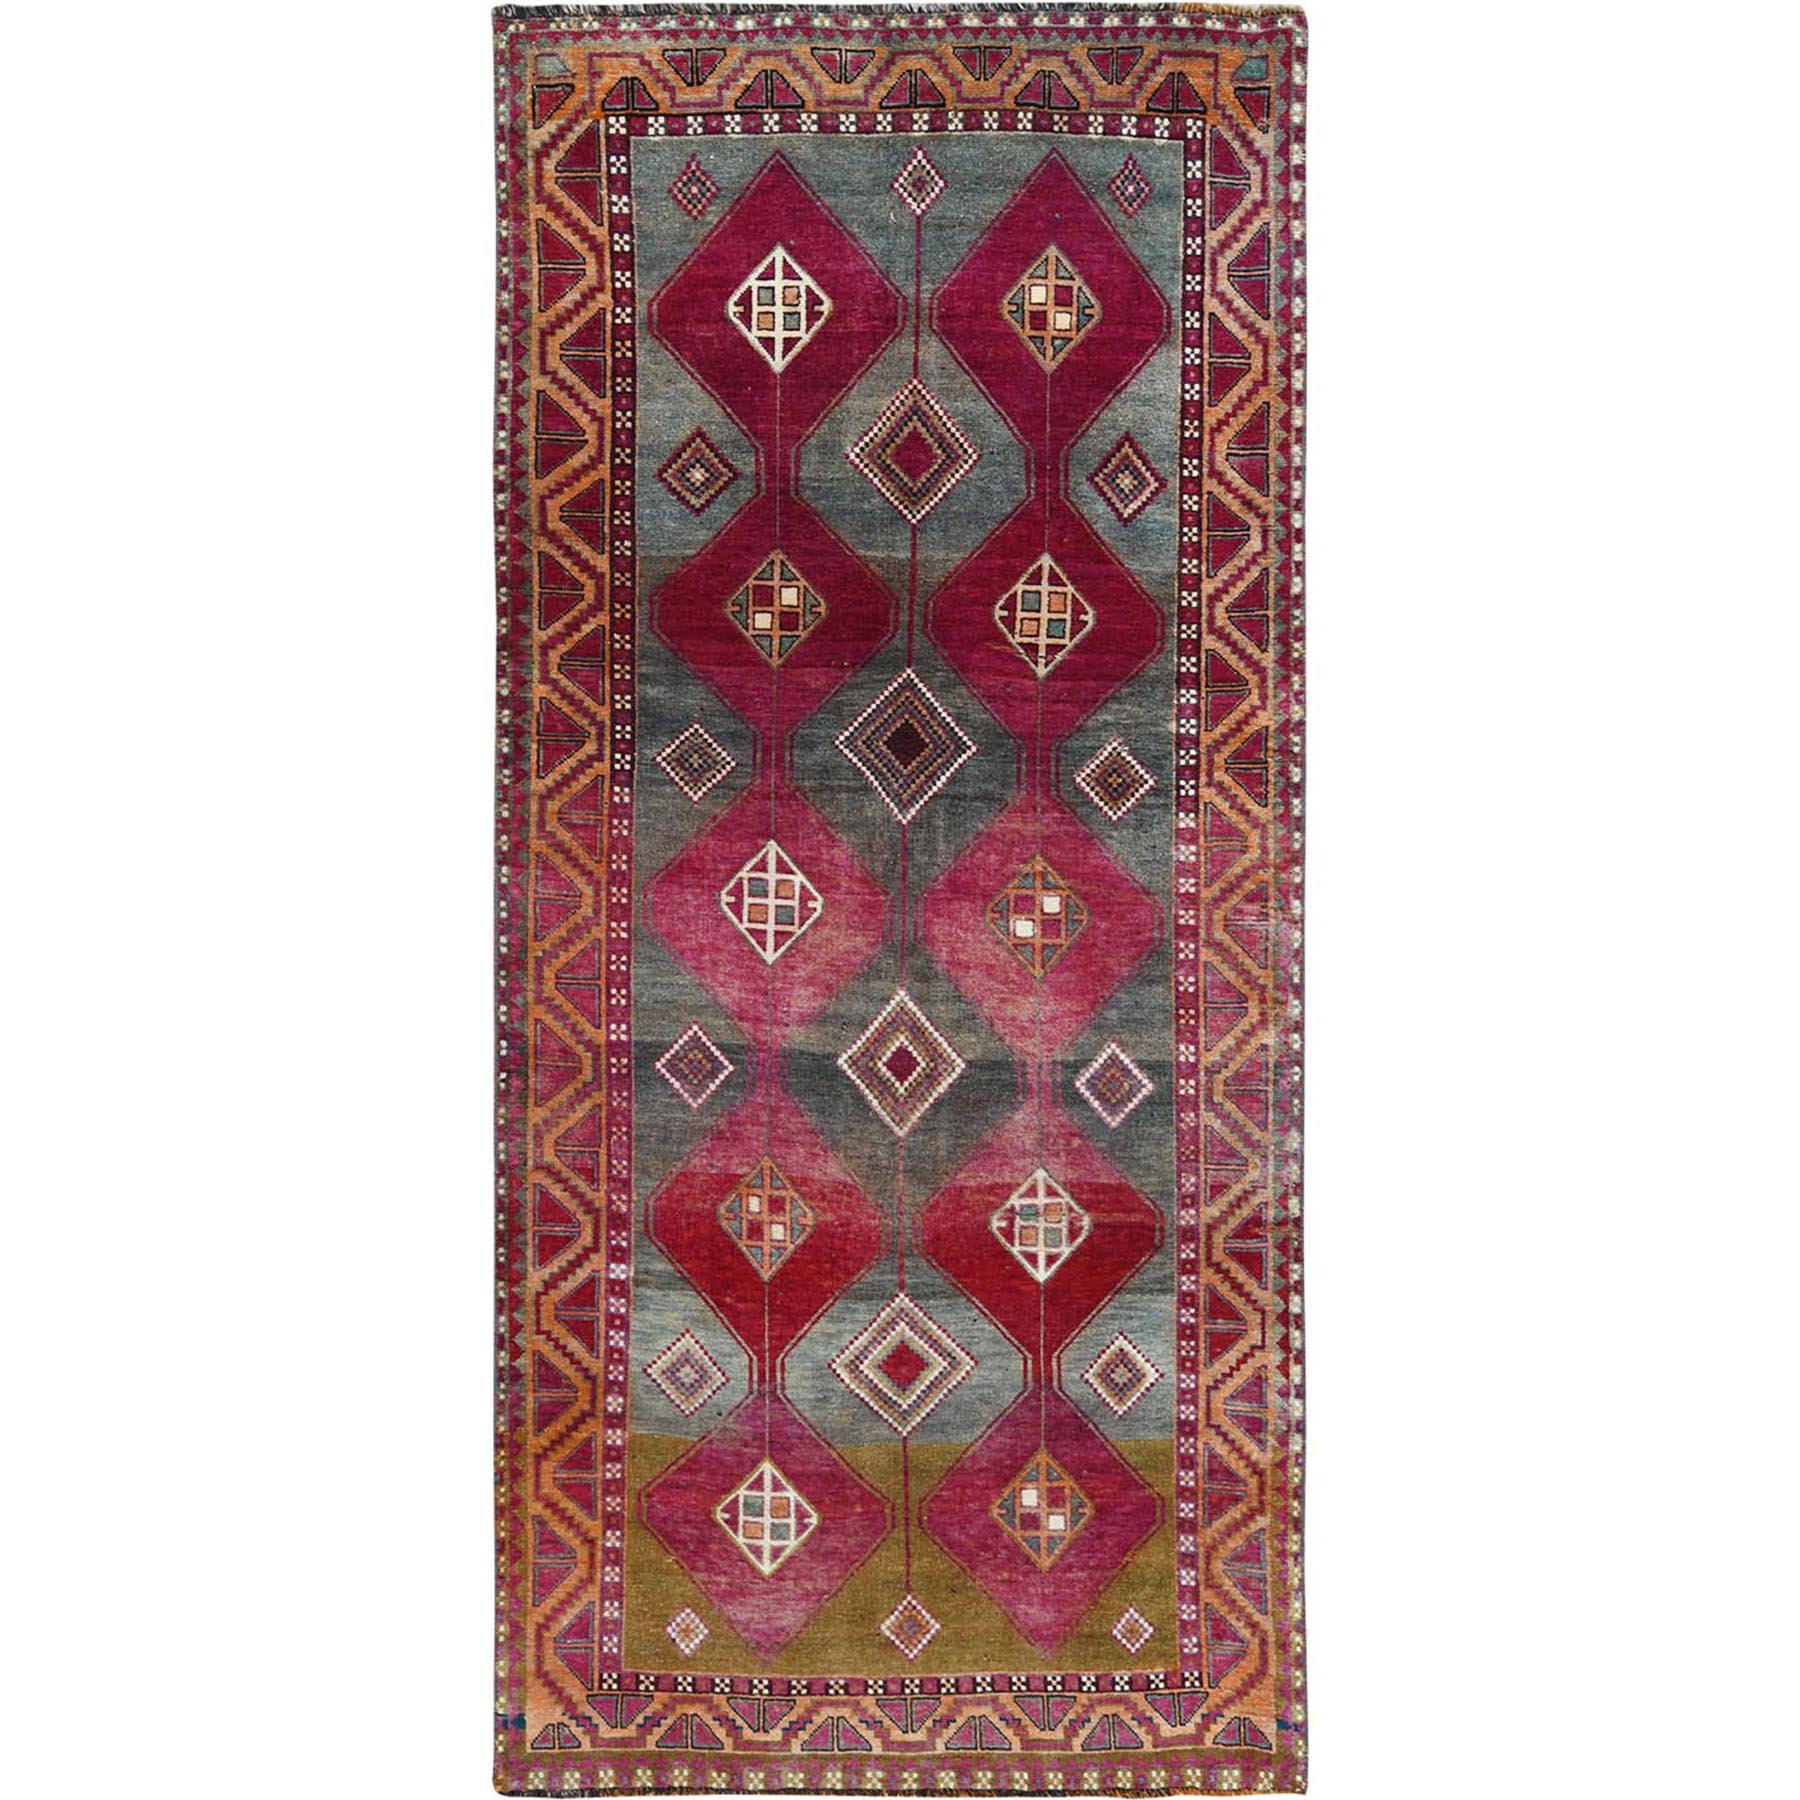 Fetneh Collection And Vintage Overdyed Collection Hand Knotted Pink Rug No: 1115648